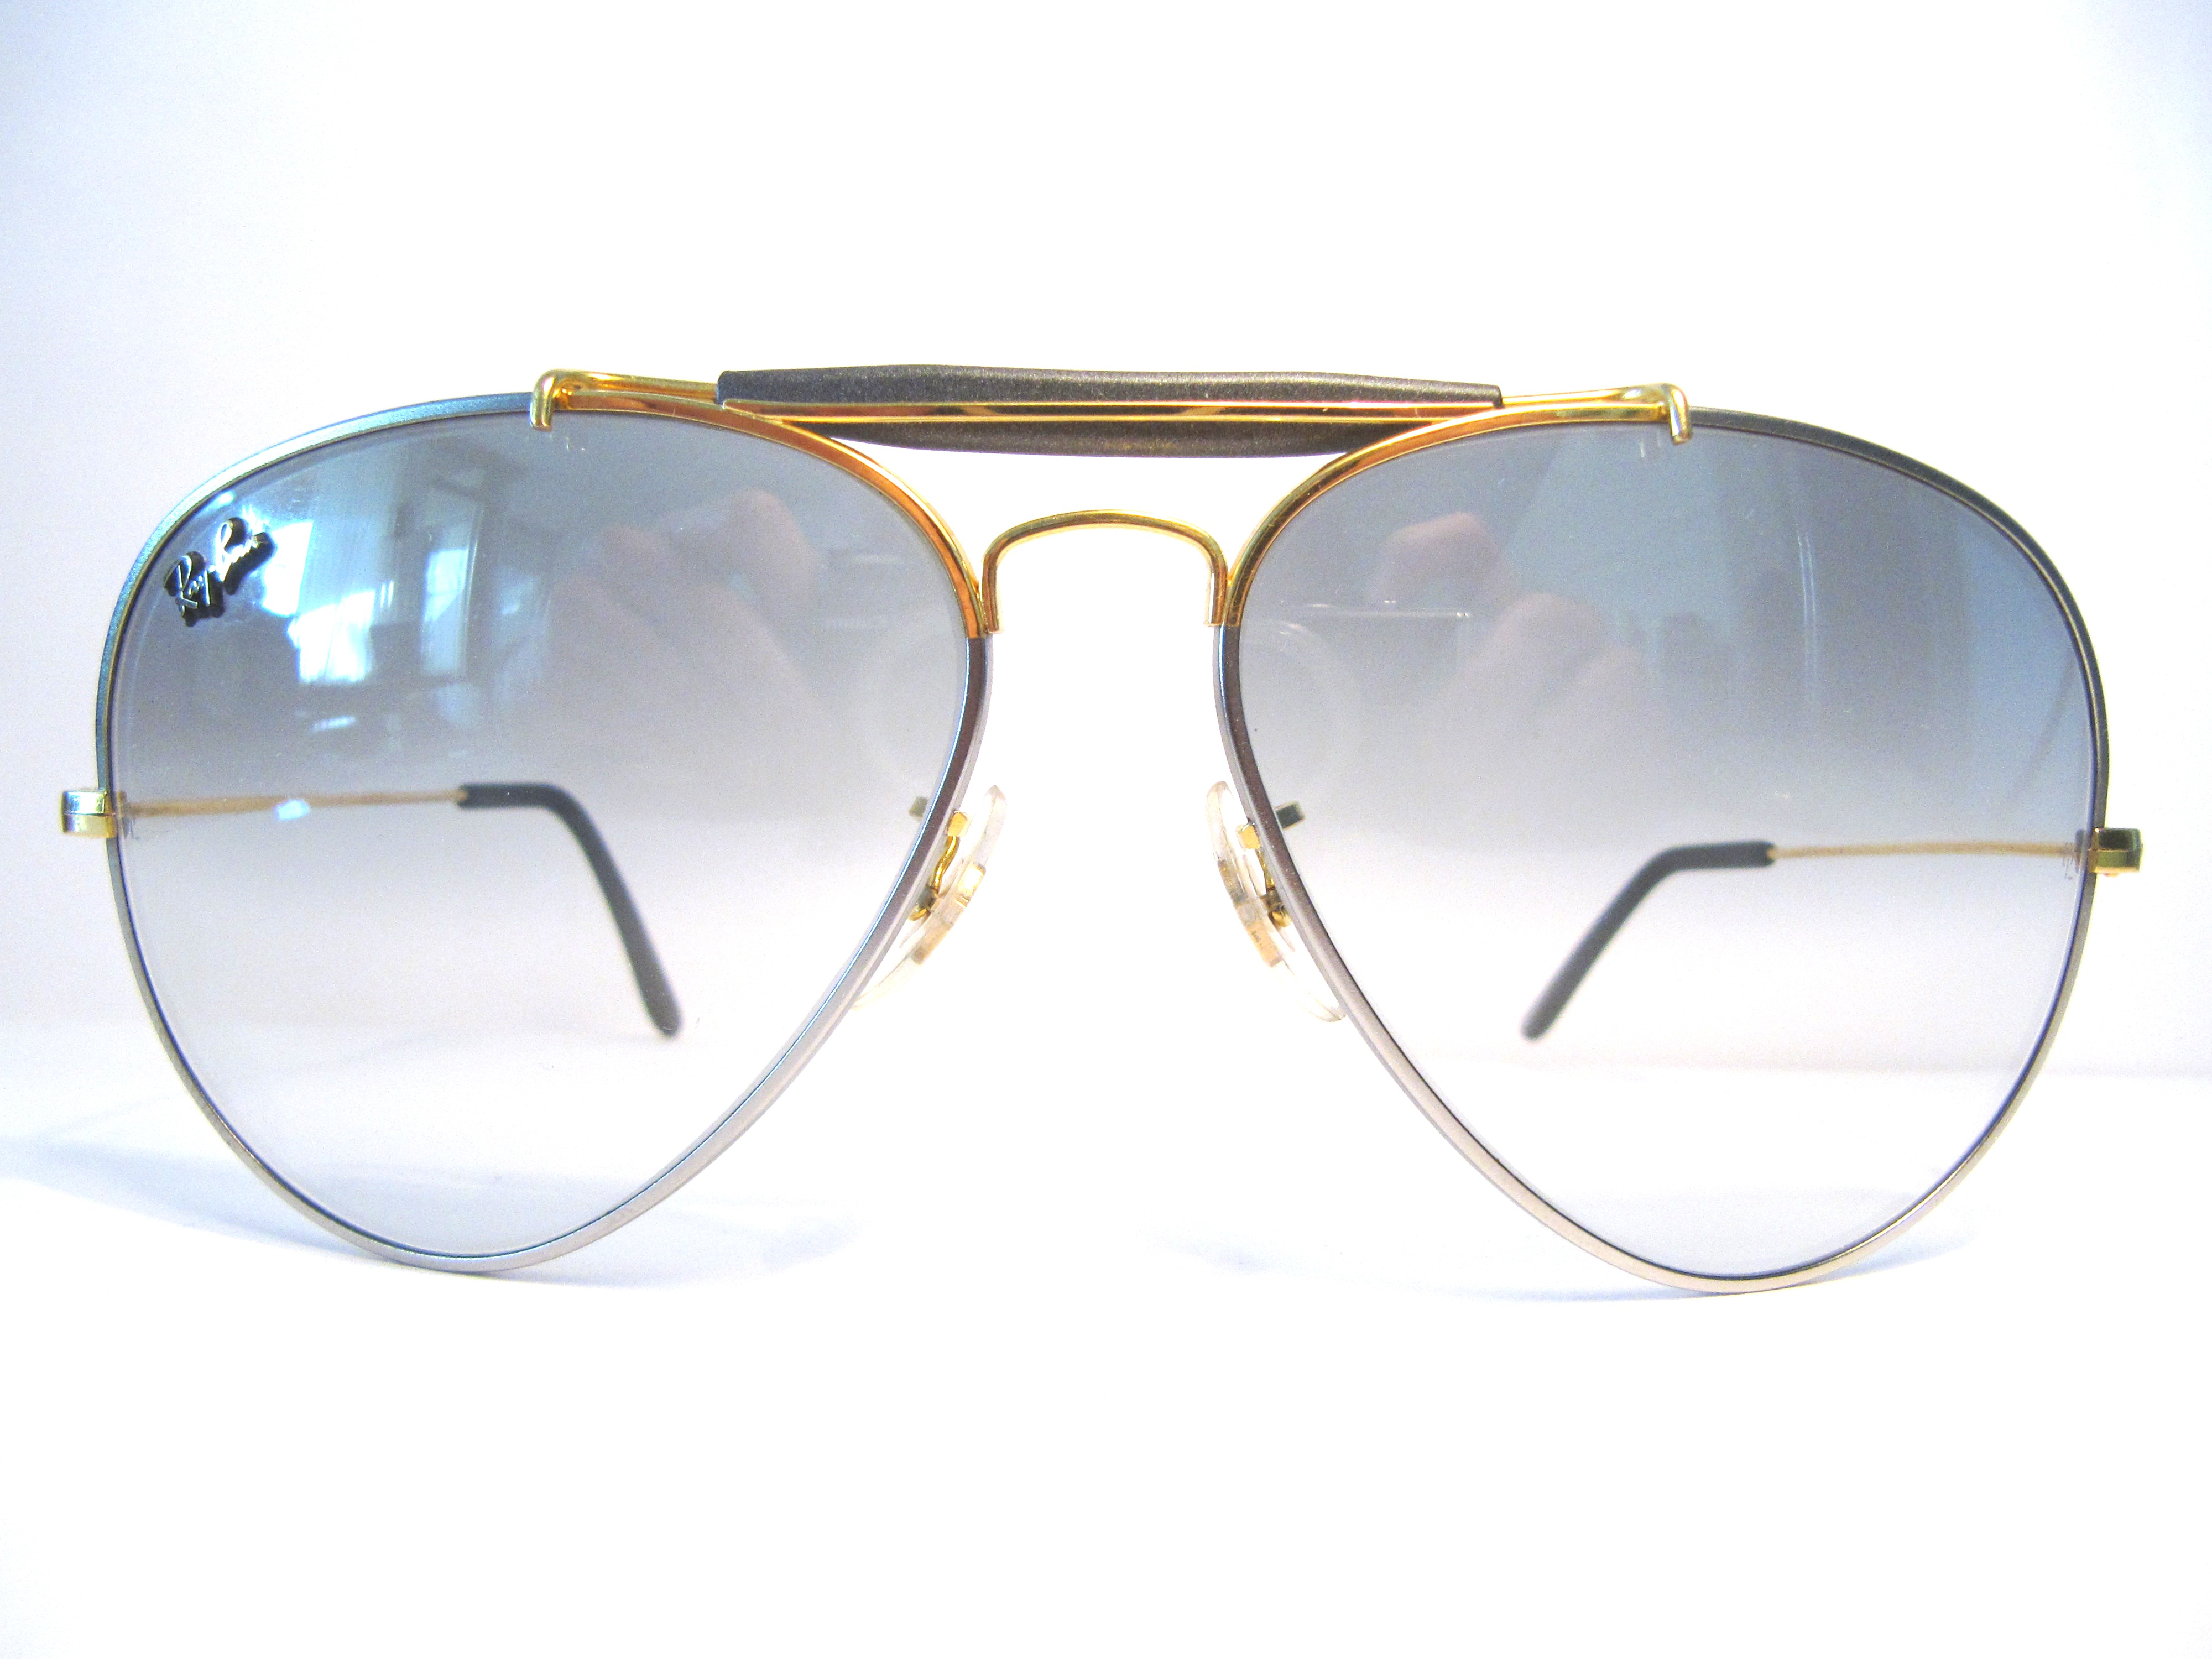 588c15b22db Bausch And Lomb Ray Ban Wayfarer 5022 B l